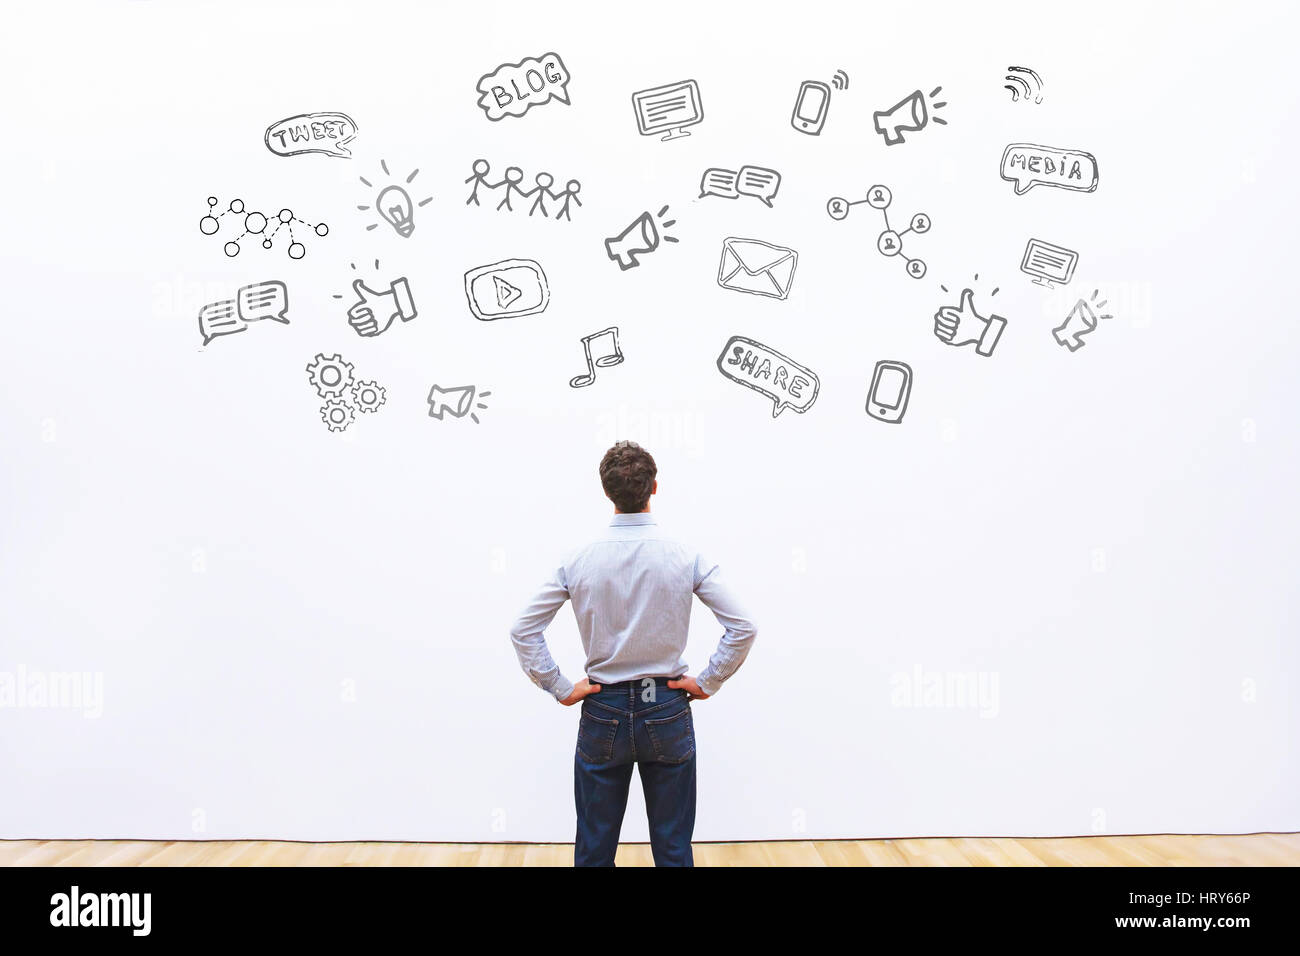 social media or network concept background, man looking at the icons of tweet, share, like and blog - Stock Image